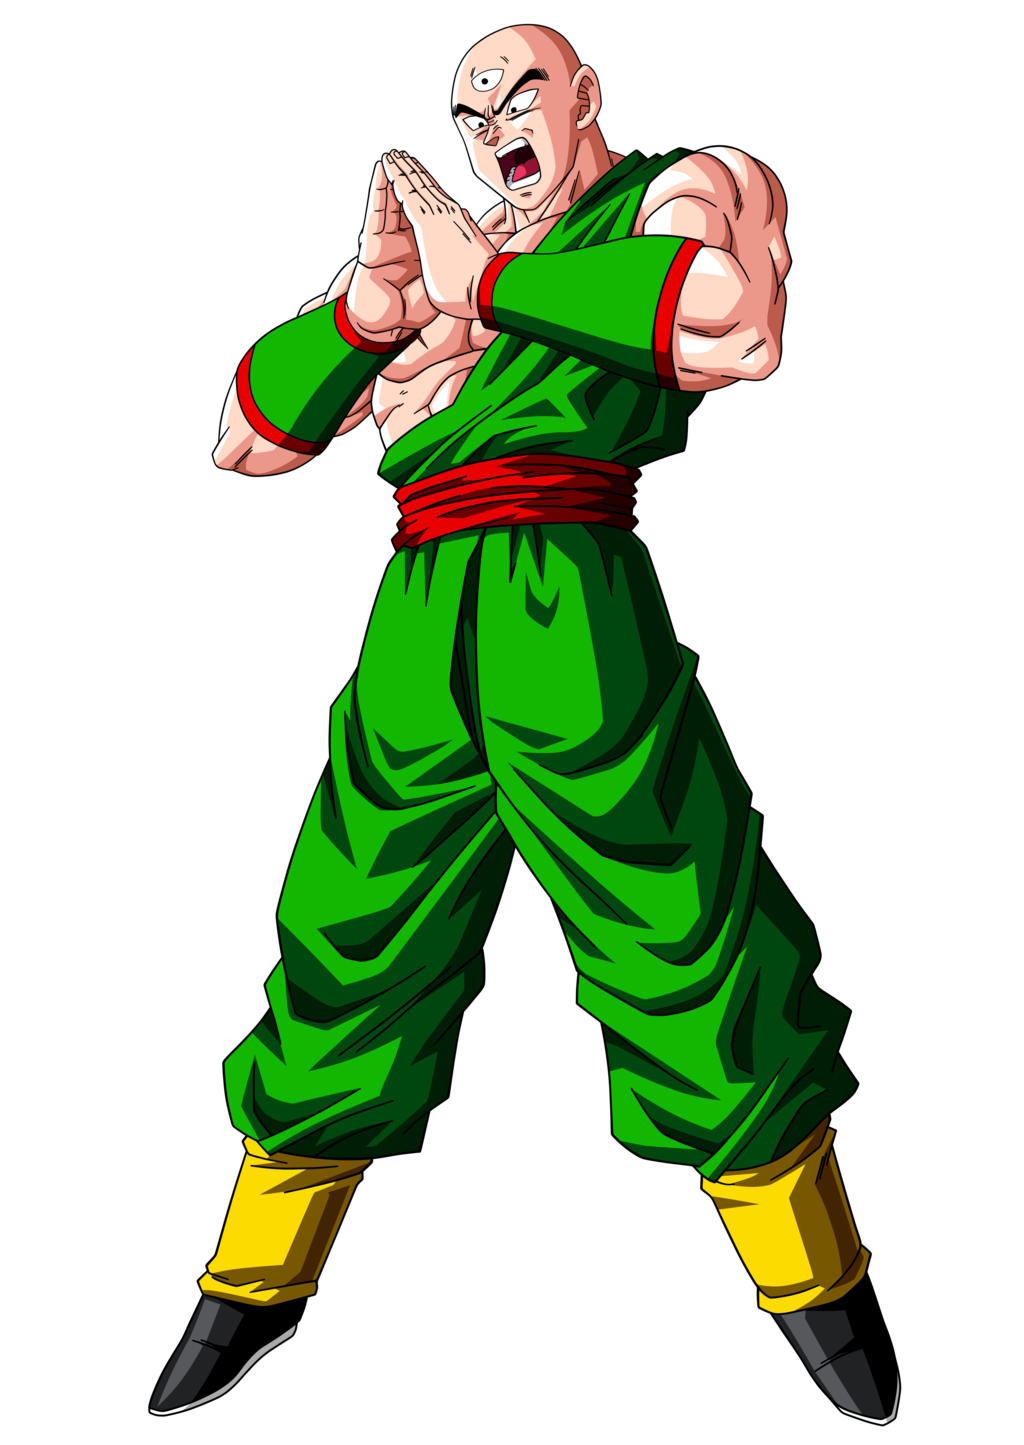 Tenshinhan heroes wiki fandom powered by wikia - Images dragon ball z ...